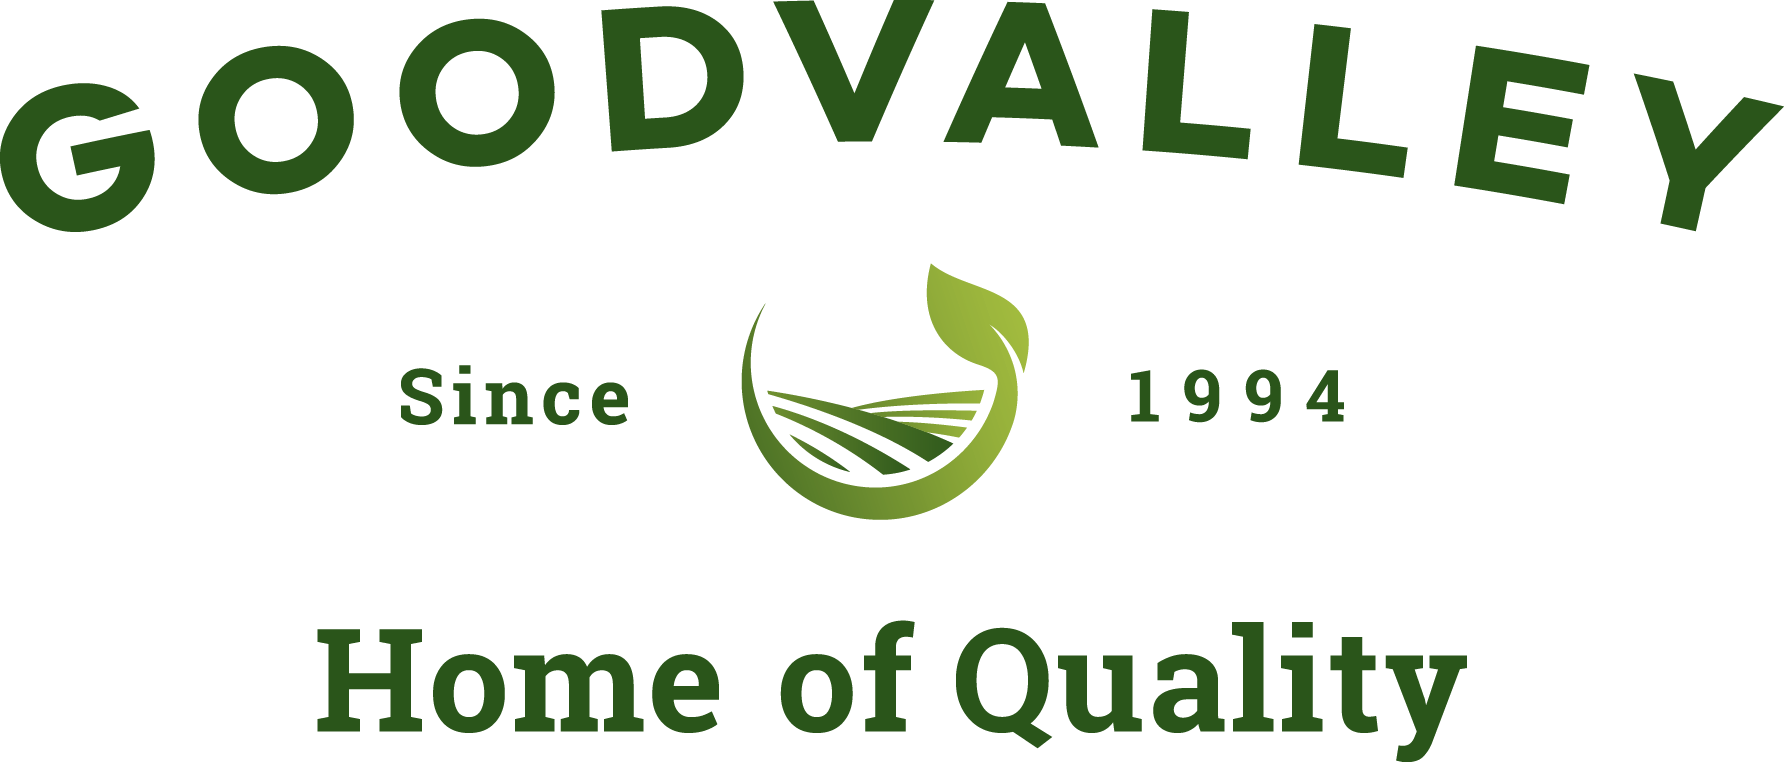 goodvalley_logo.png